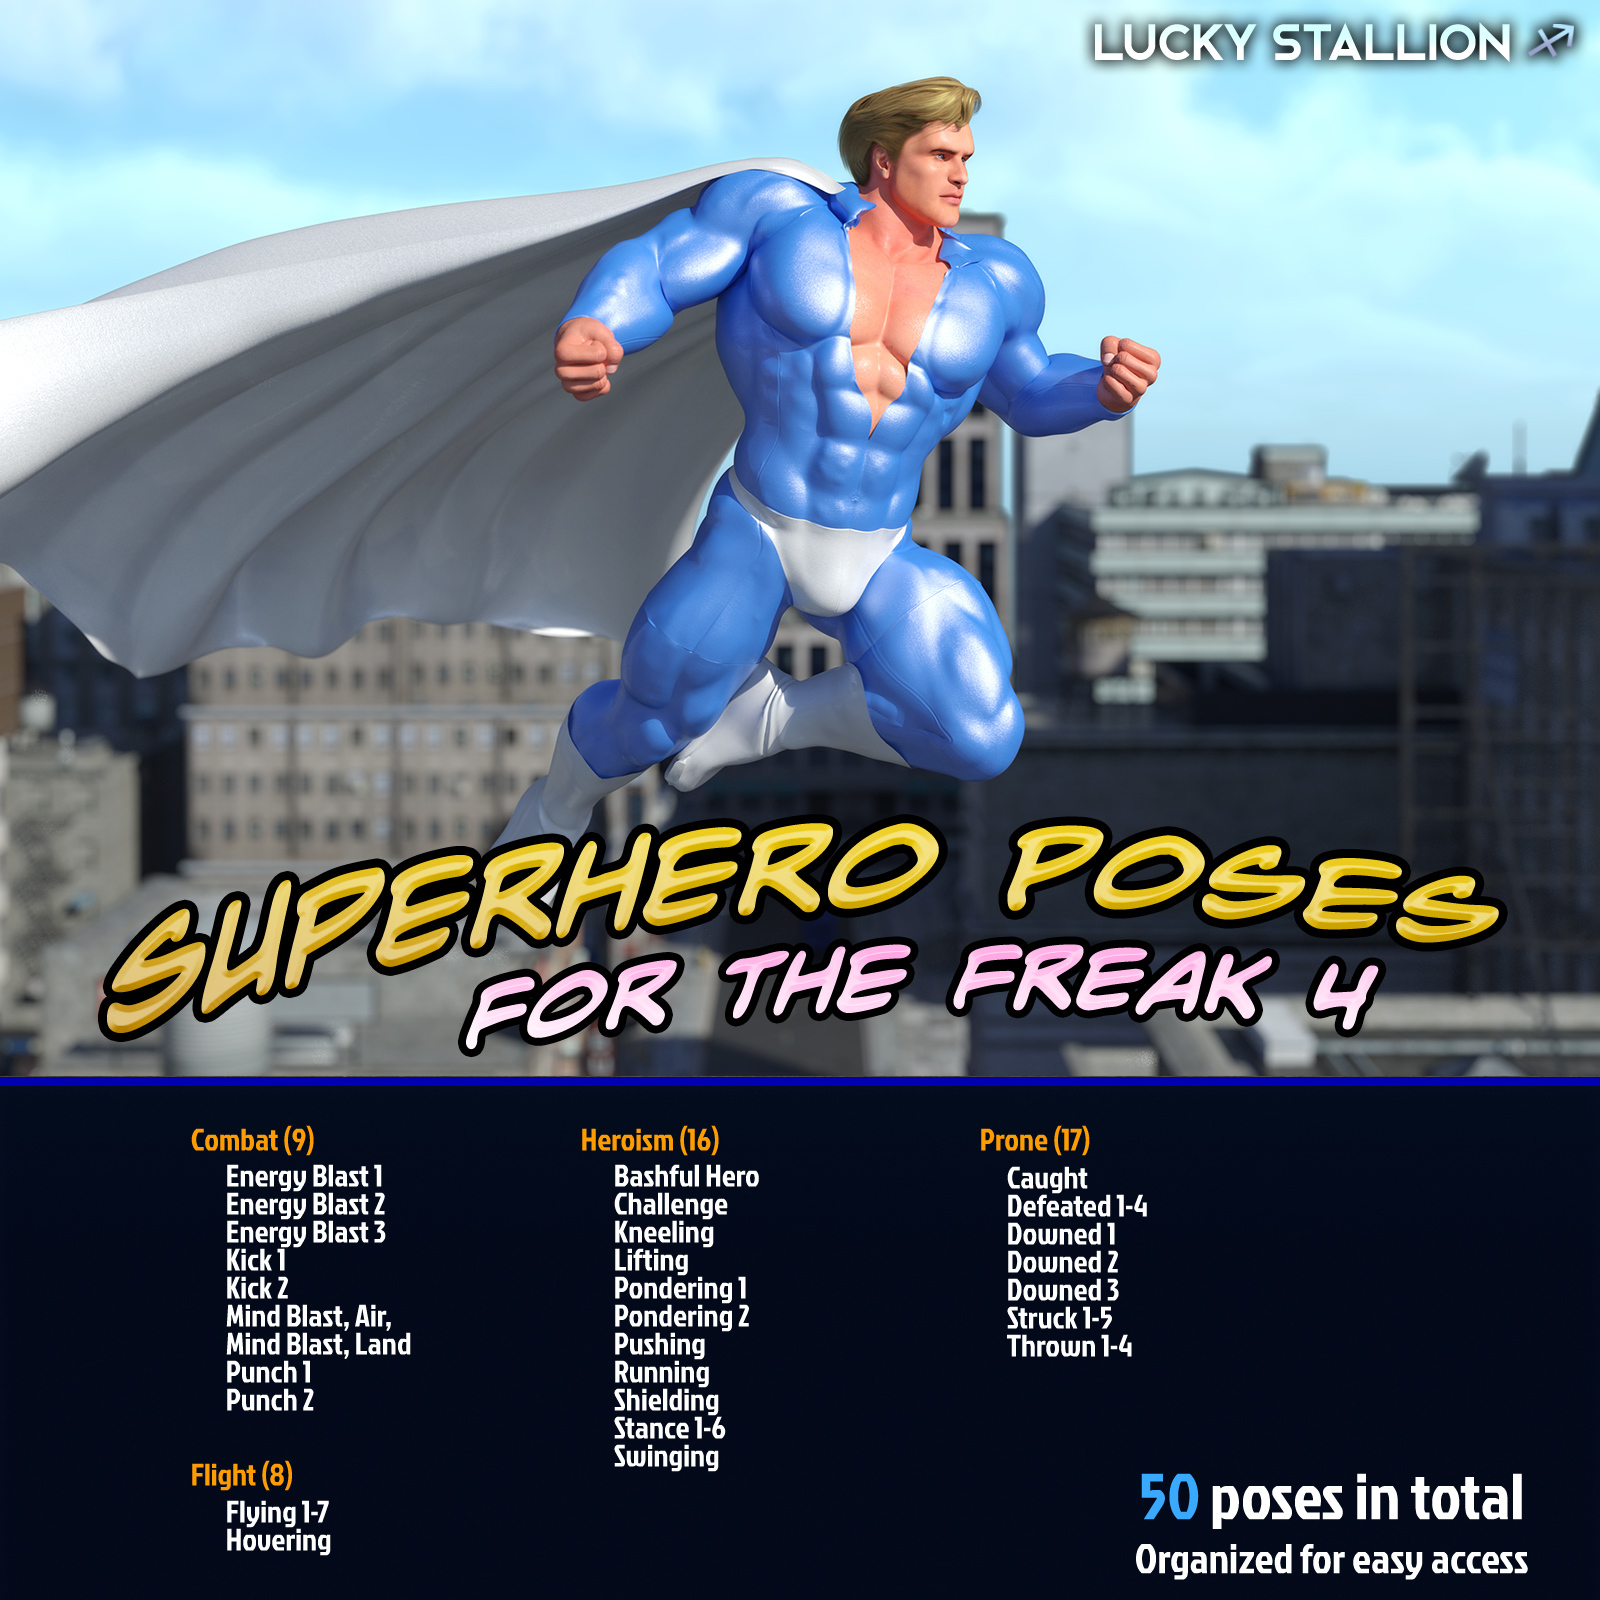 Superhero Poses for F4 by LuckyStallion